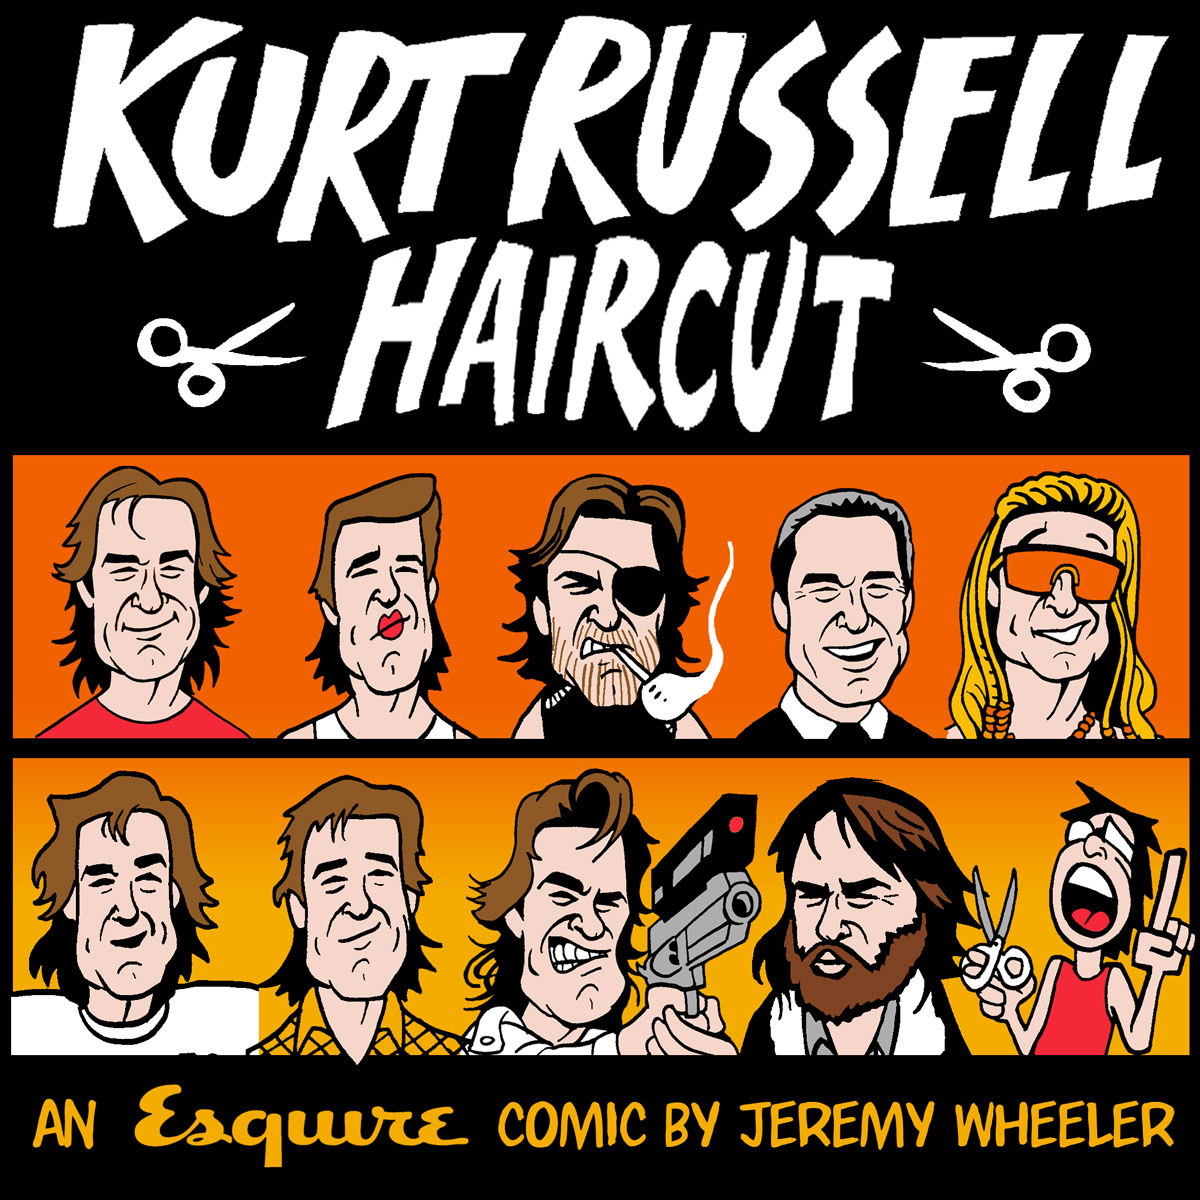 KURT RUSSELL HAIRCUT   Wrote and illustrated this comic.